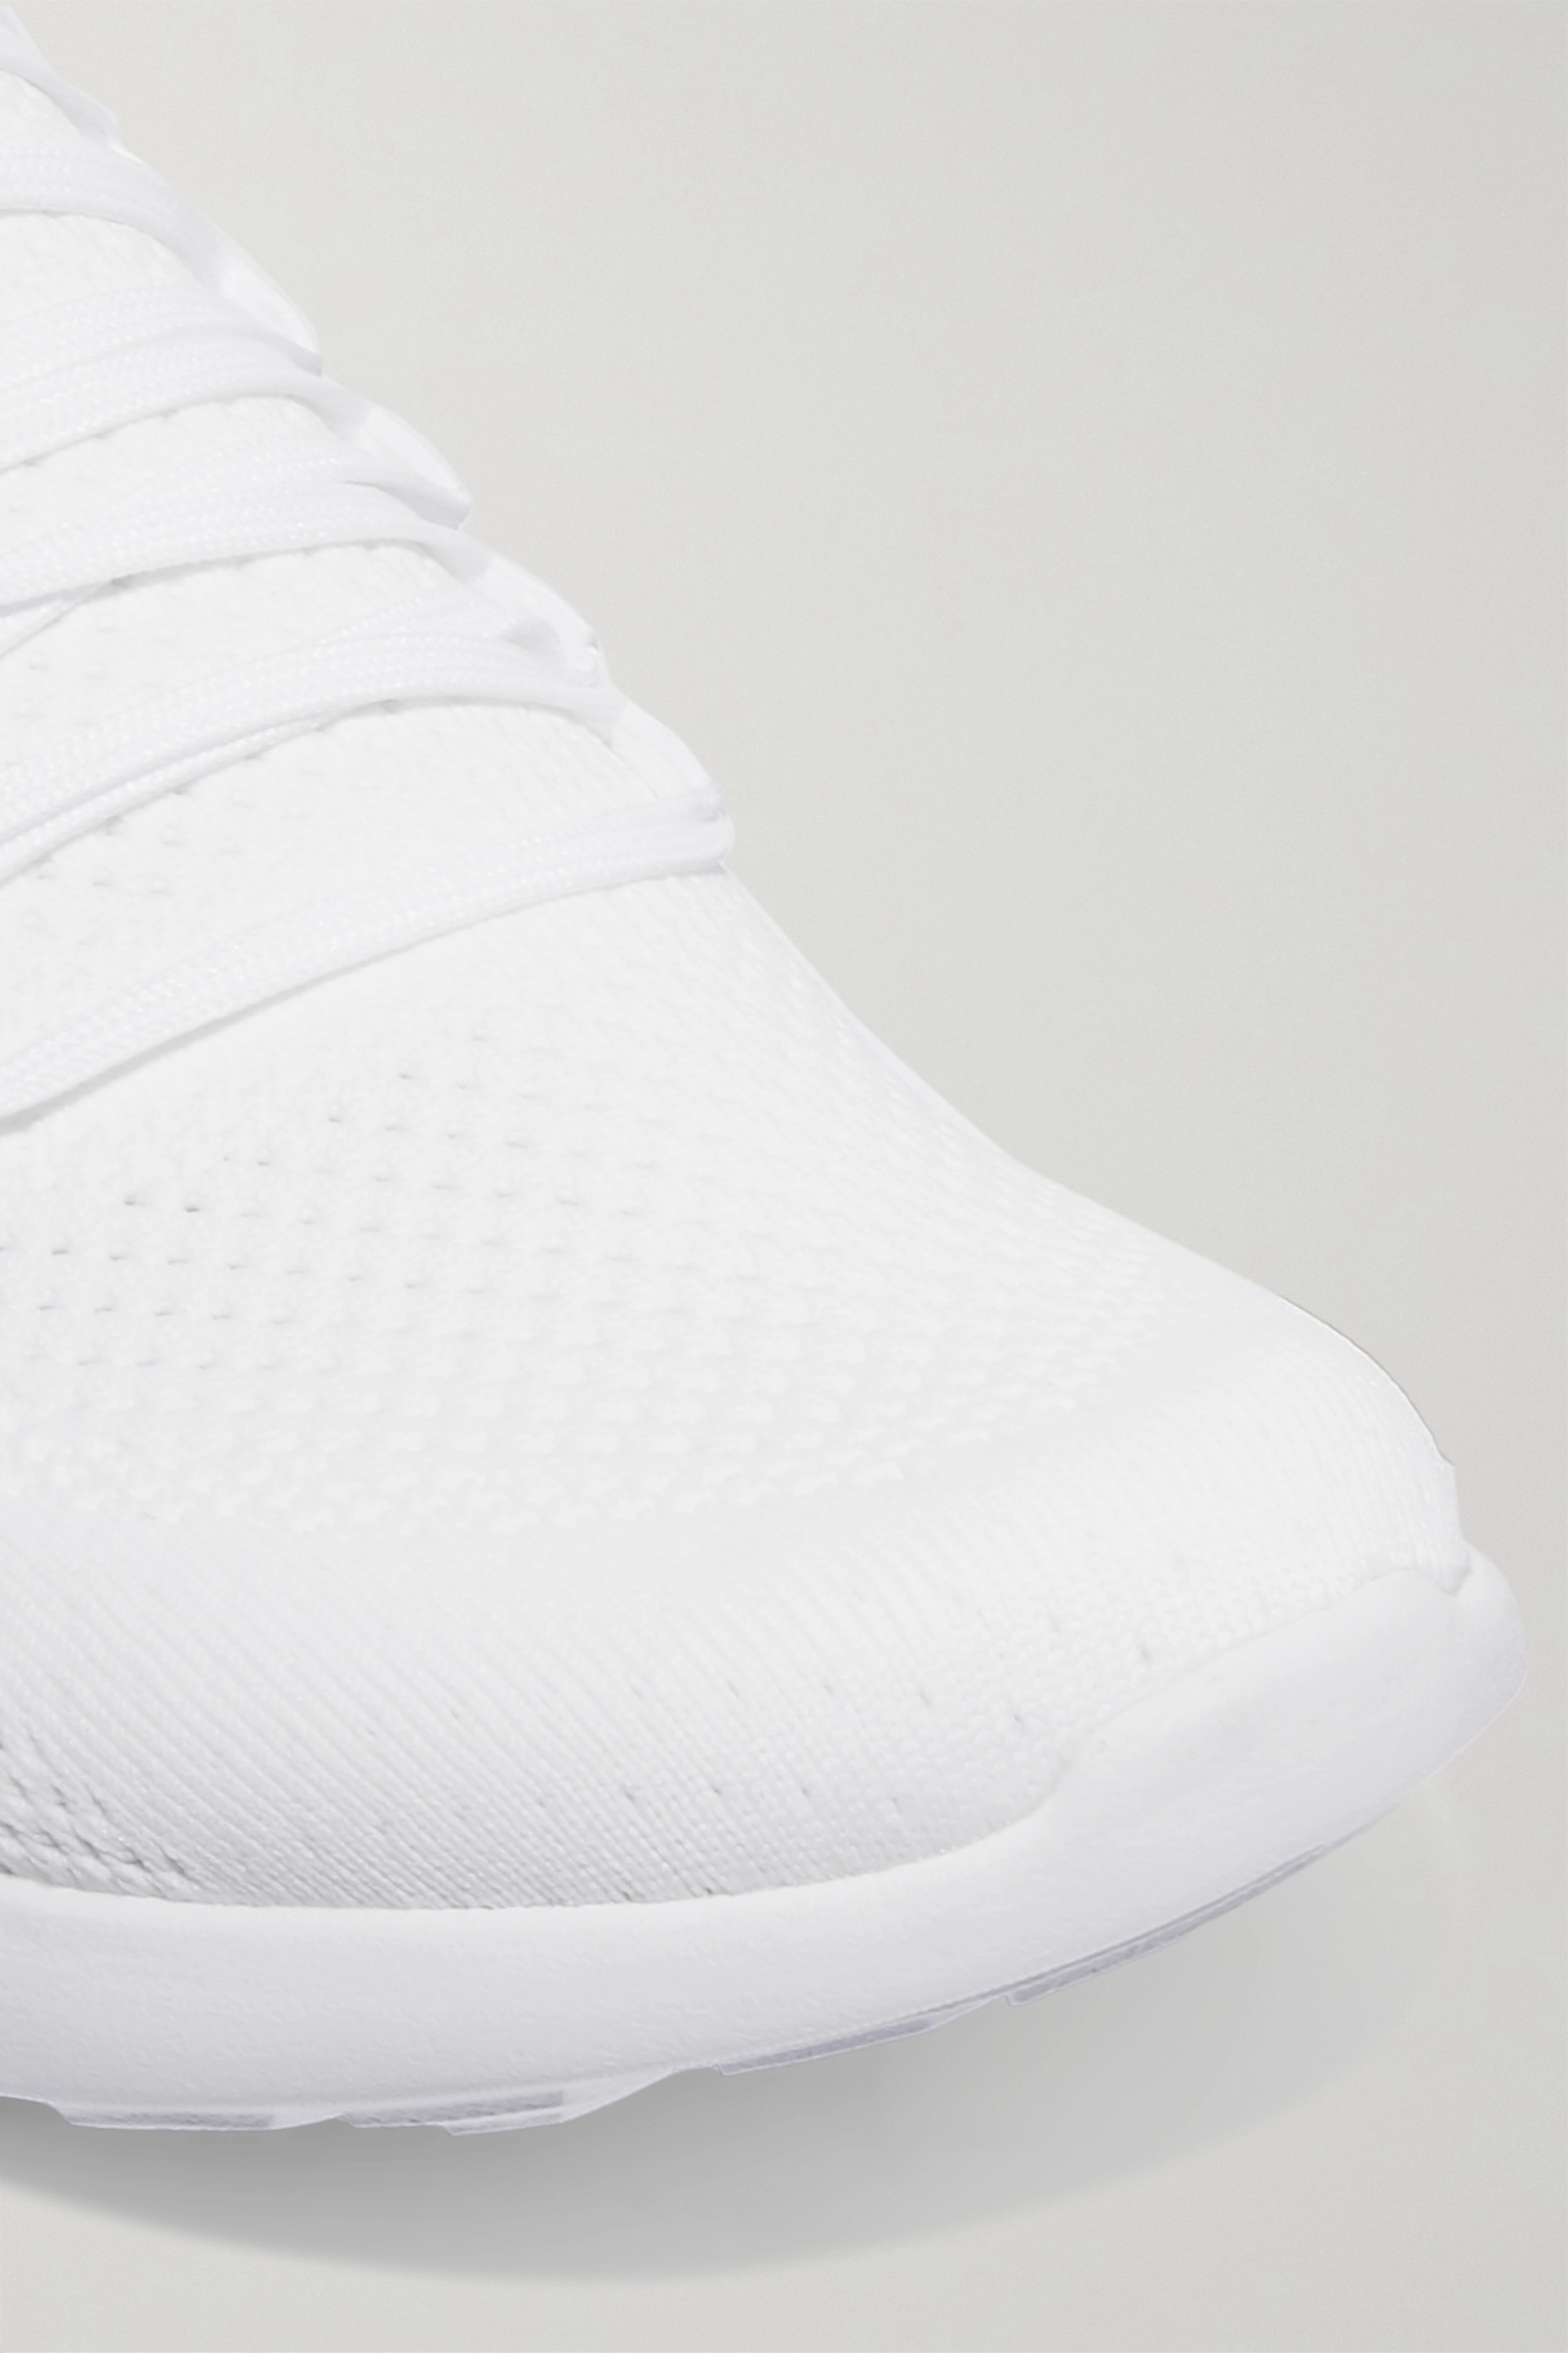 APL Athletic Propulsion Labs TechLoom Breeze mesh sneakers